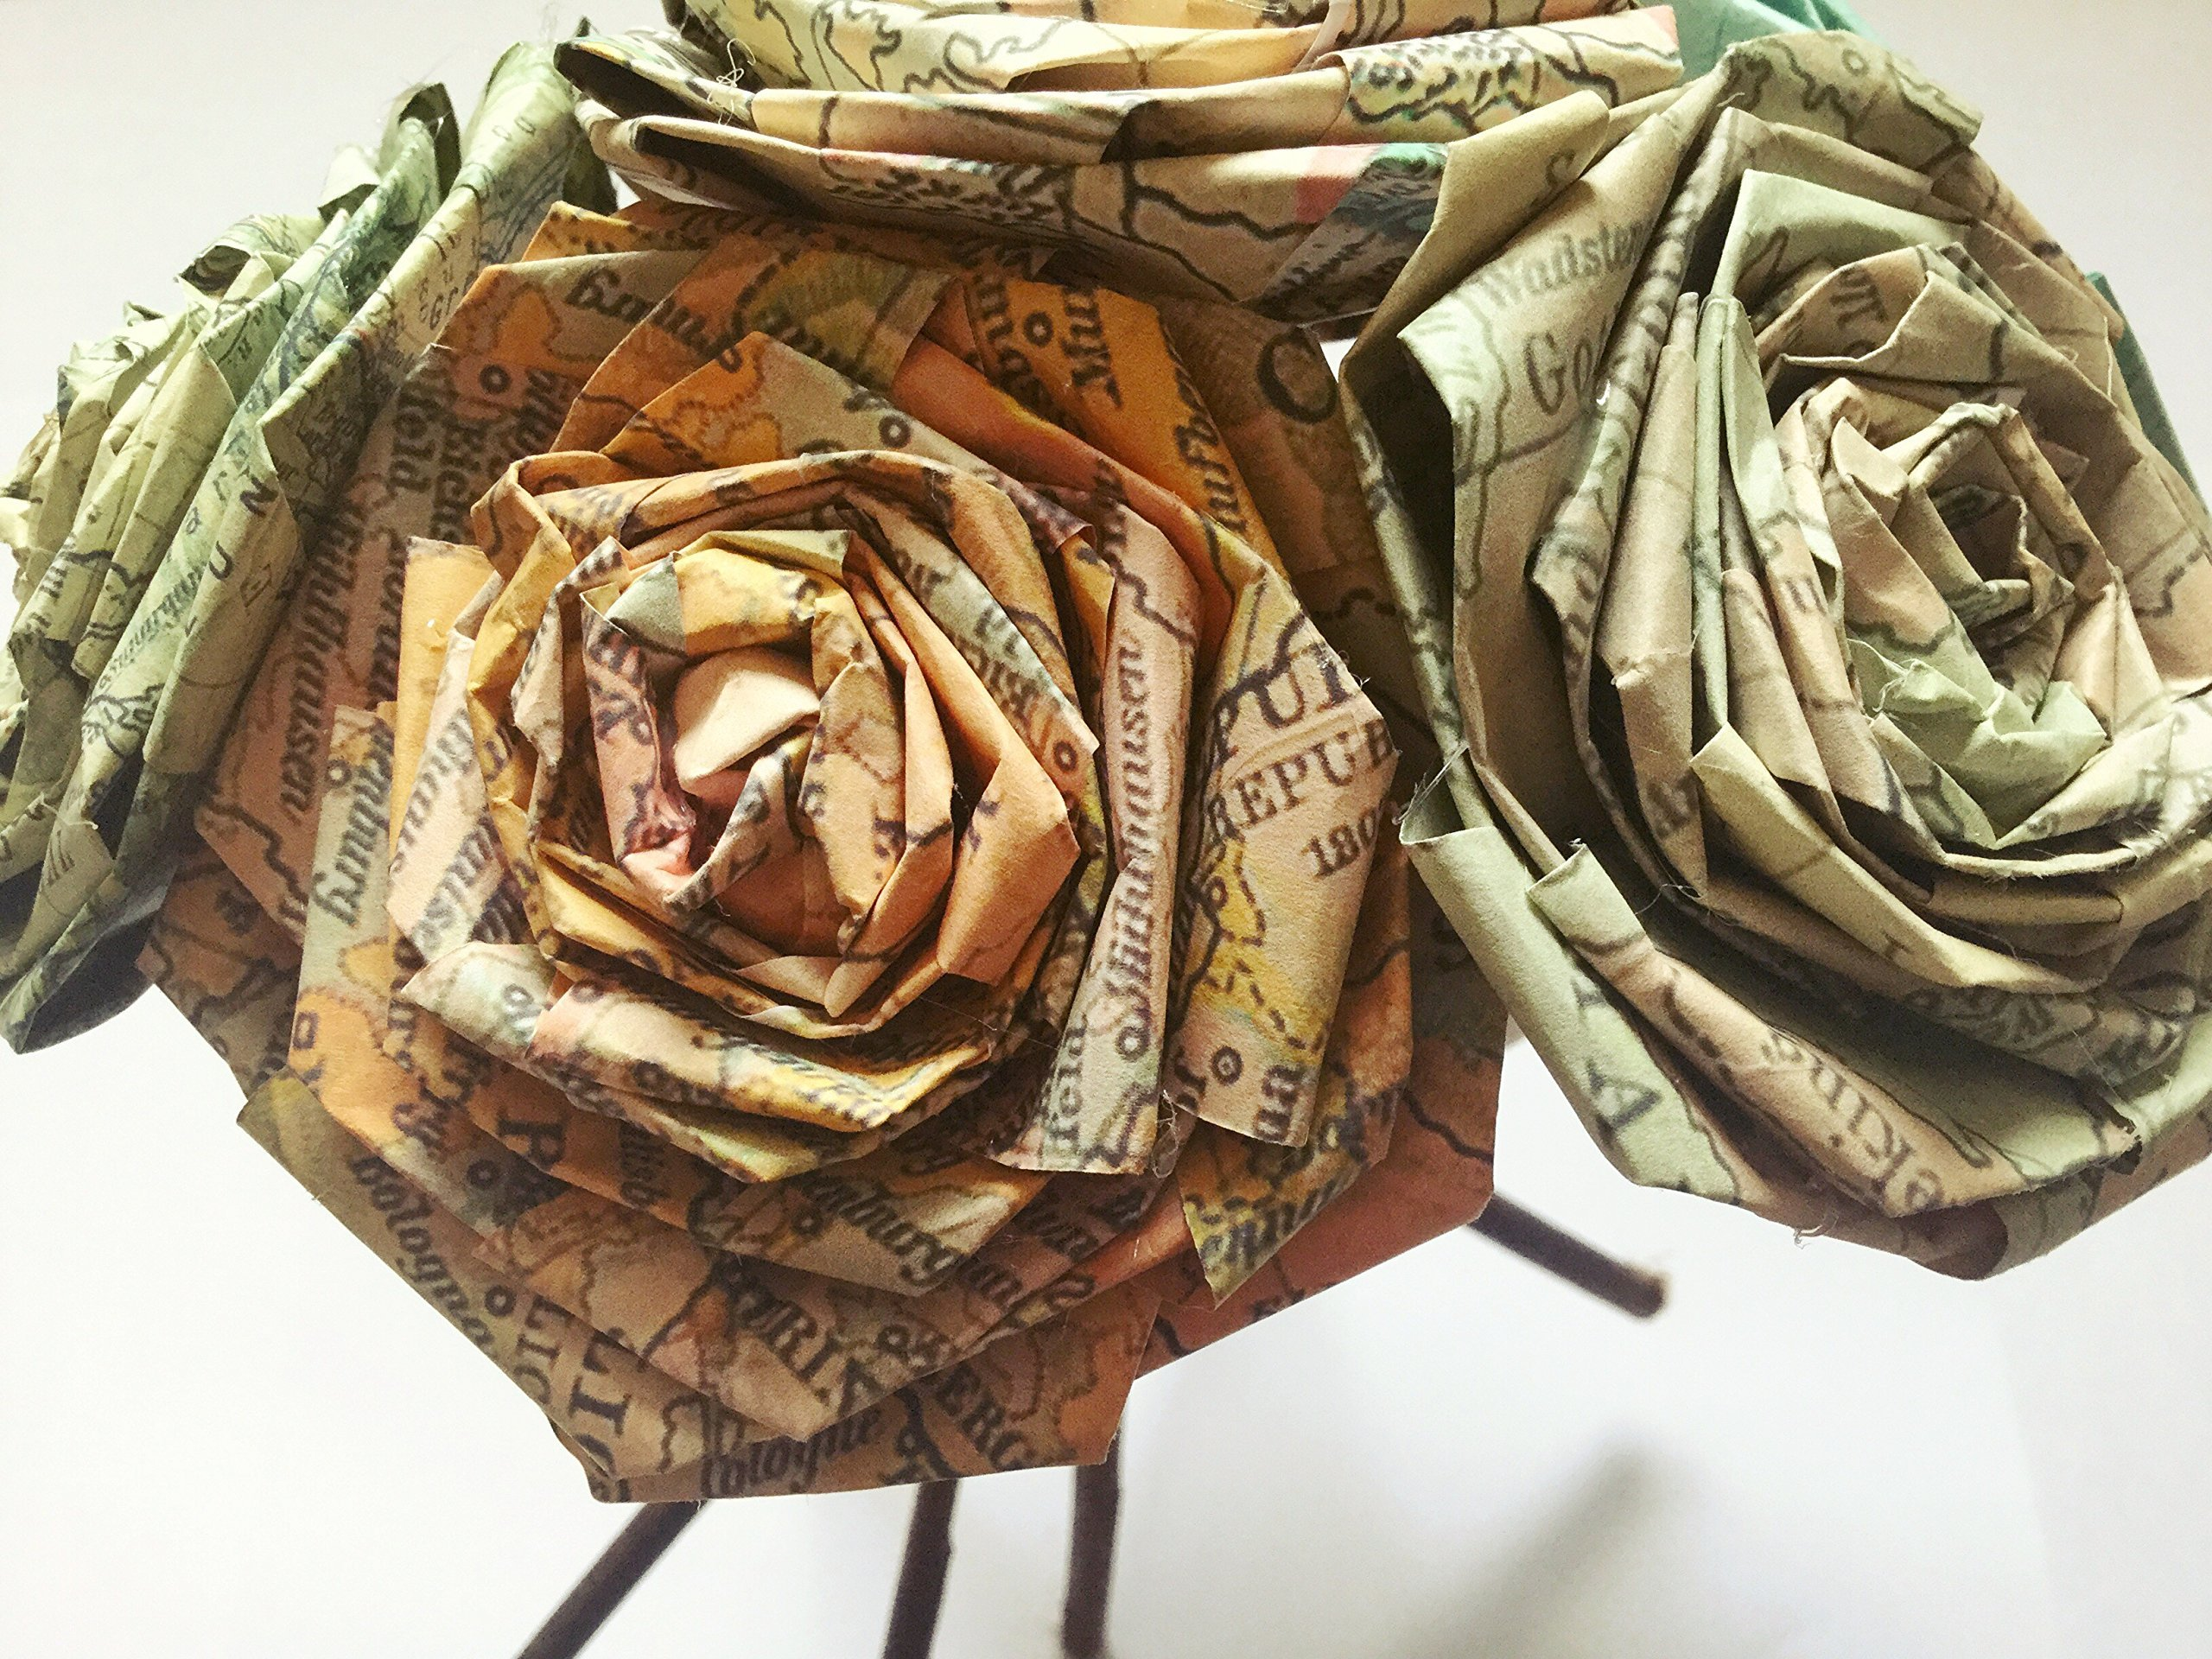 Vintage-Map-Paper-Rose-Bouquet-Vintage-Home-Decor-Artificial-Flora-Flowers-Gift-for-Her-Him-Travel-Themed-Destination-Wedding-Paper-Flower-Bouquets-Handmade-Bunch-of-5-6